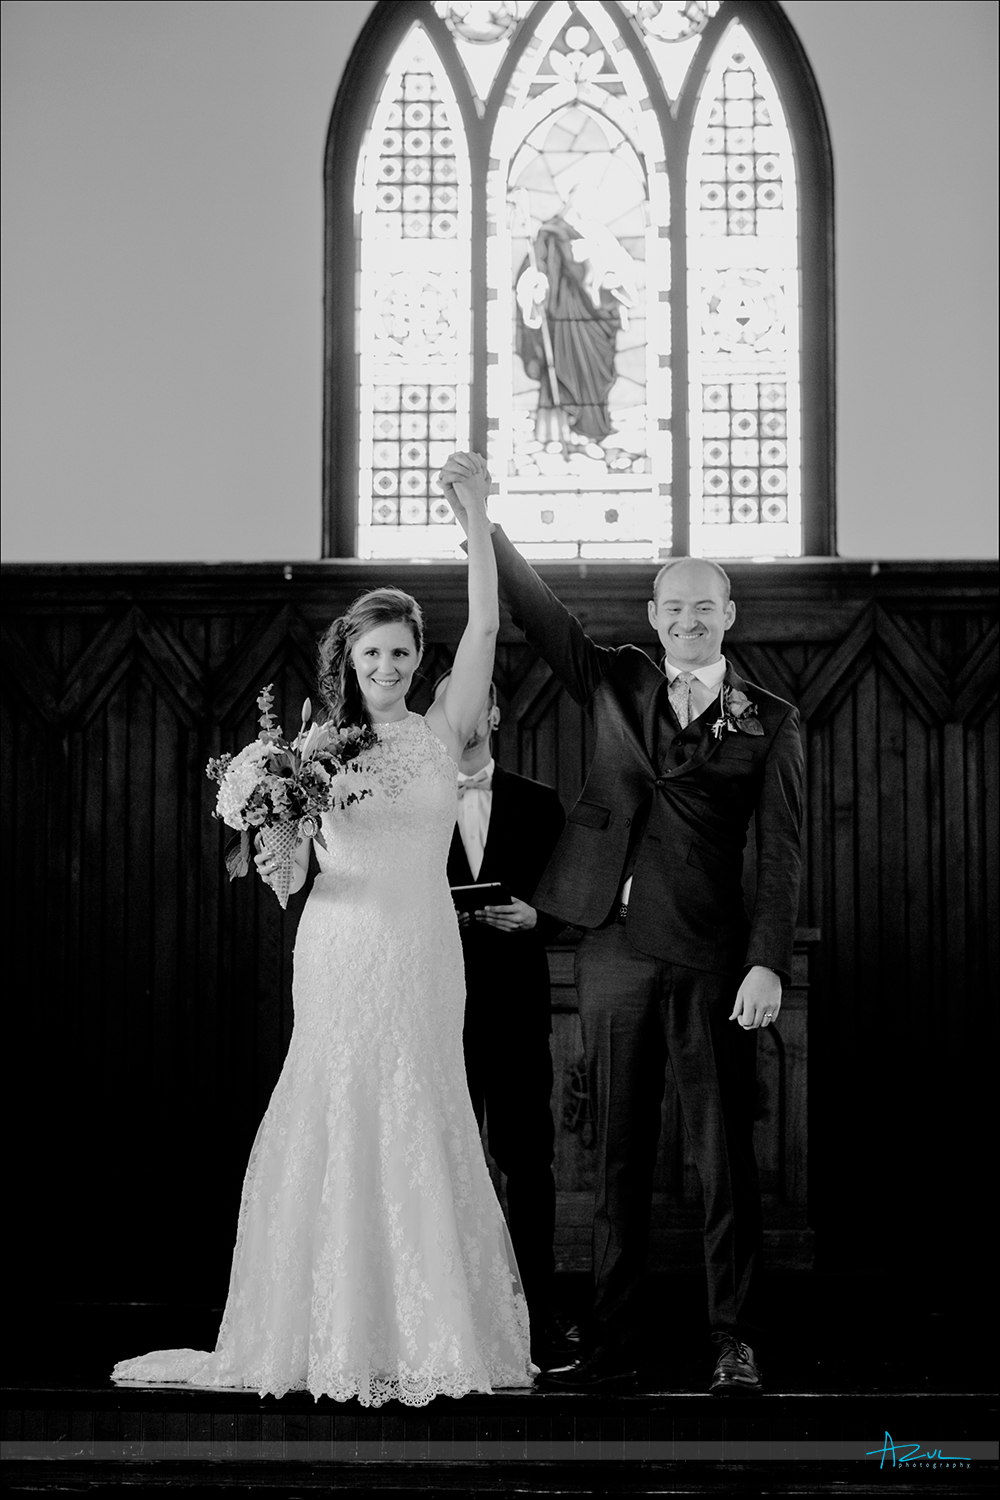 The bride and groom raise their arms in victory after the wedding as the photographer captured this perfectly in Raleigh NC